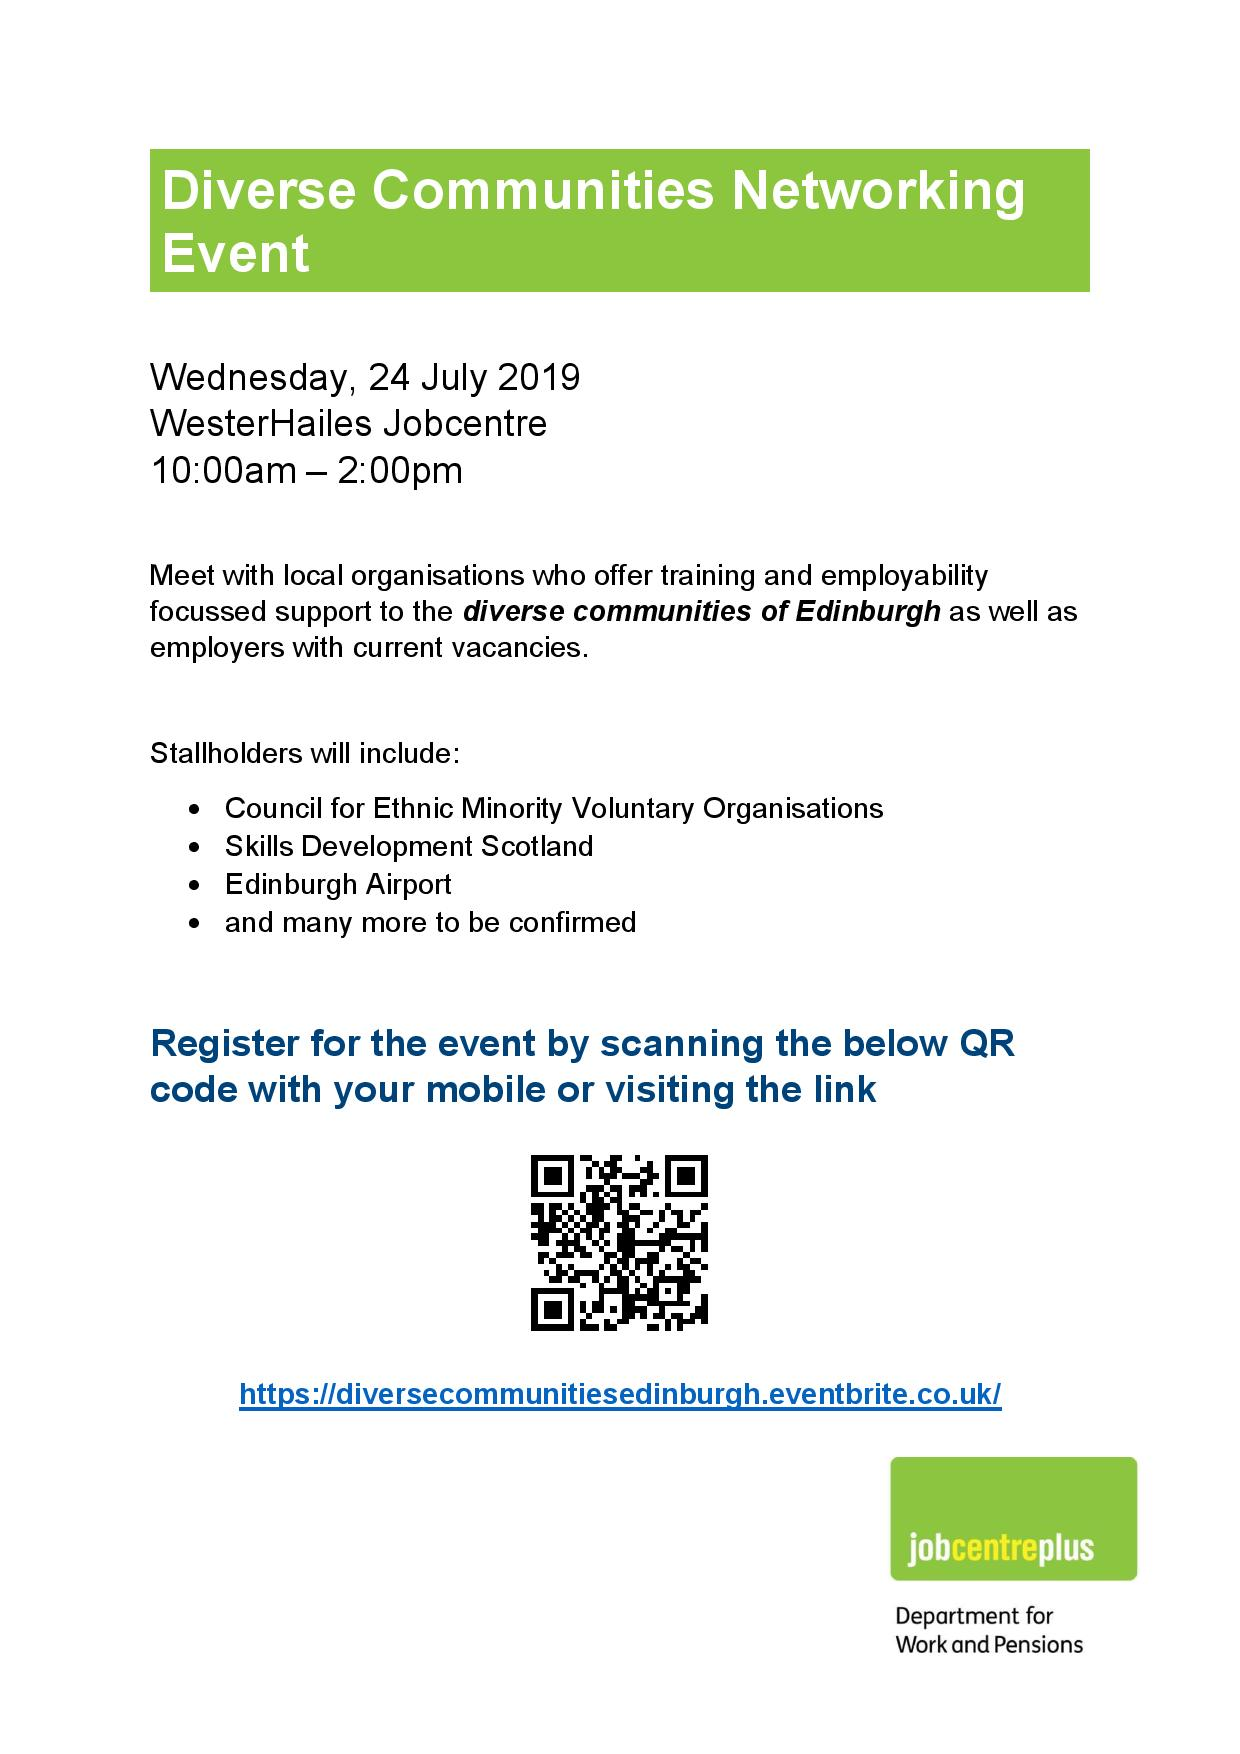 https://i2.wp.com/jobzone.edinburghcollege.ac.uk/wp-content/uploads/2019/07/Poster_Diverse-Communities-Networking-Event-page-001.jpg?fit=1240%2C1754&ssl=1